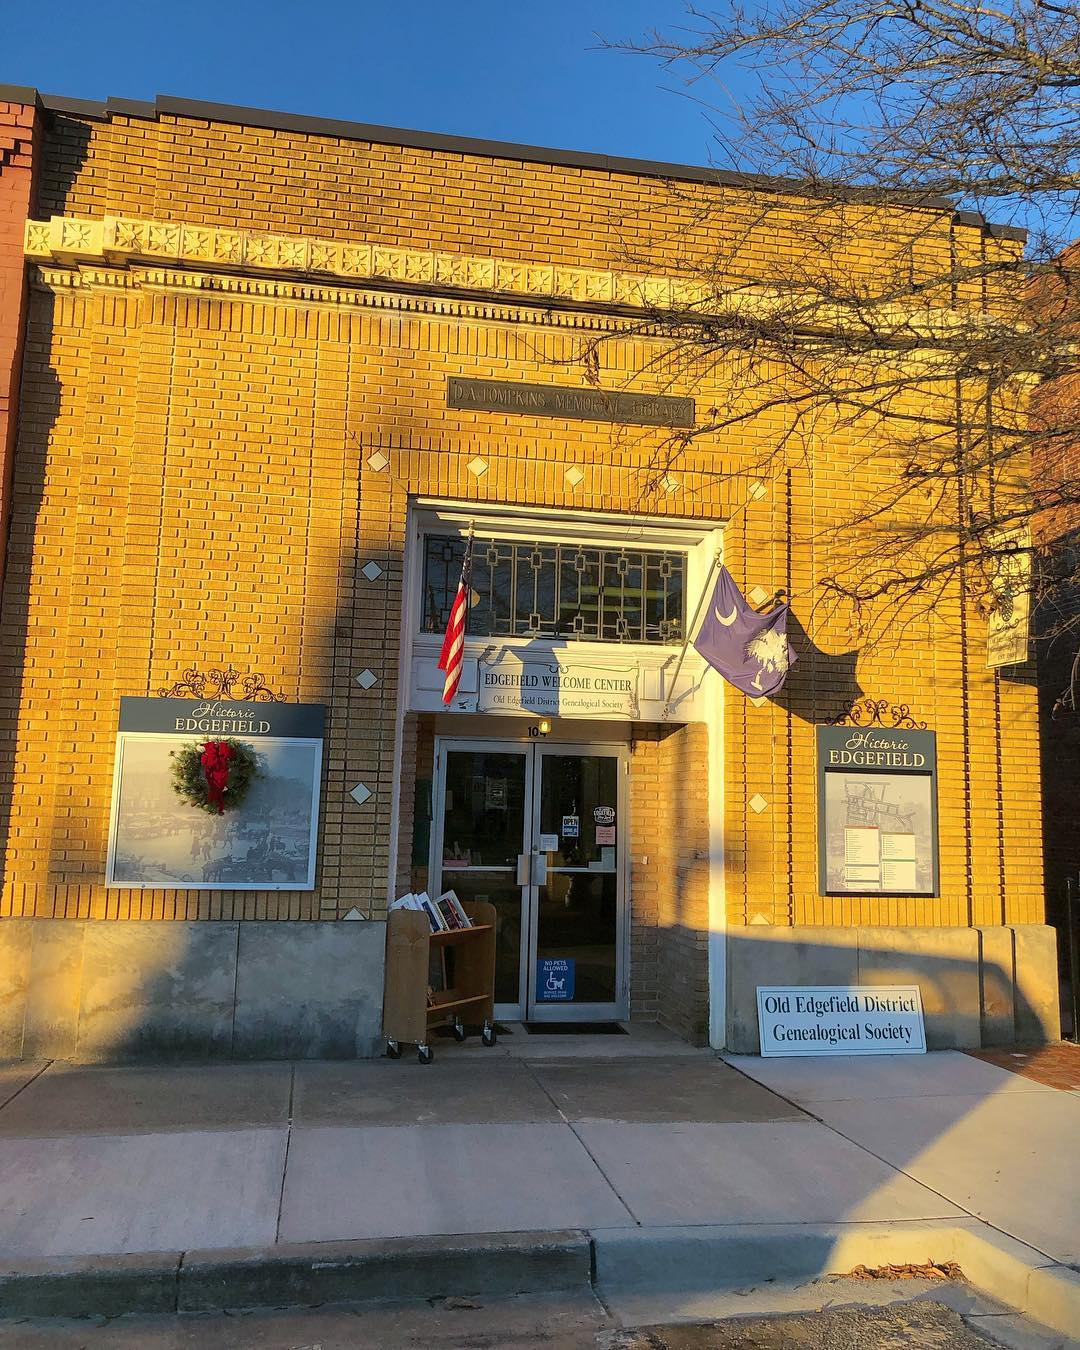 Previously the People's Bank, the D A Tompkins Library moves in after the bank failed. Daniel Augustus Tompkins was the Co-Founder of the Charlotte Observer bequeathed funds to start library in Edgefield. It is now the home of the Old Edgefield District Genealogical Society